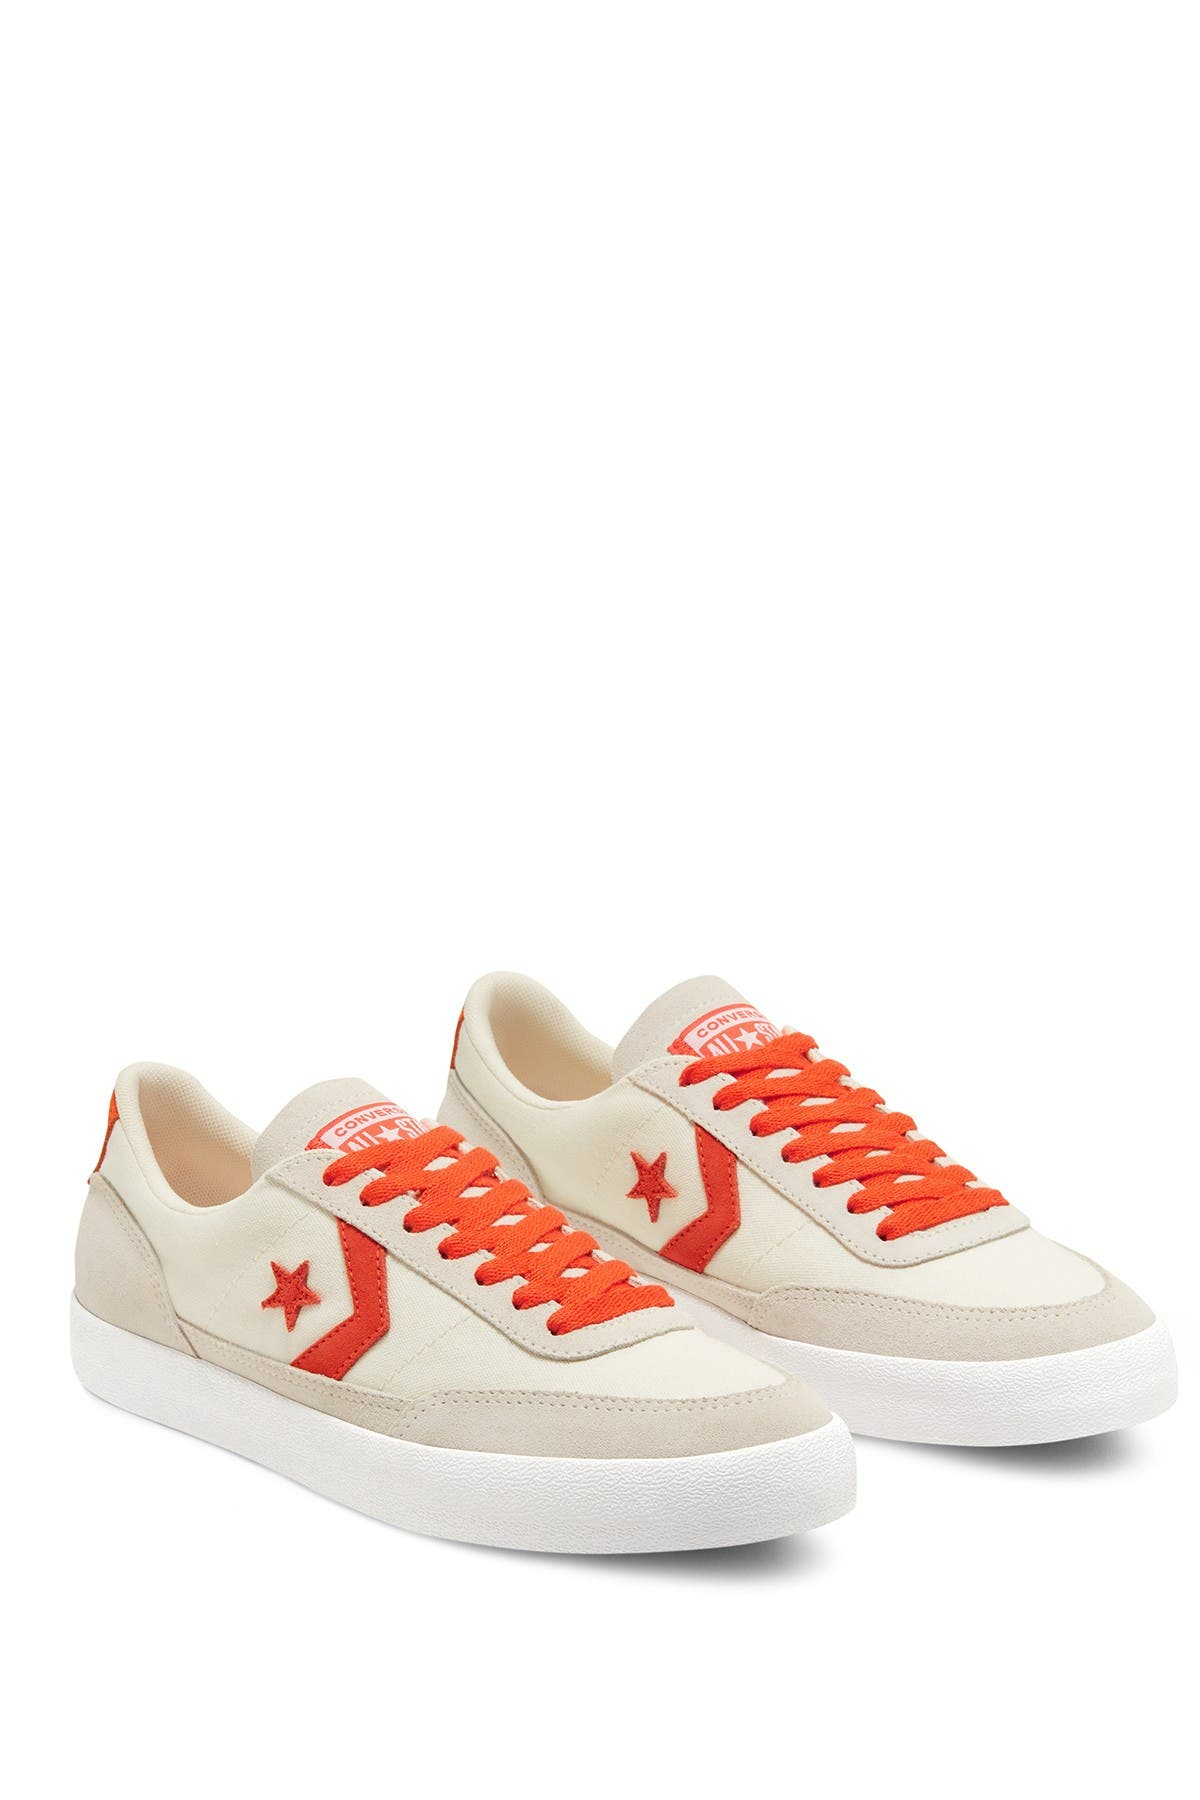 Image of Converse Net Star Classic Oxford Sneaker